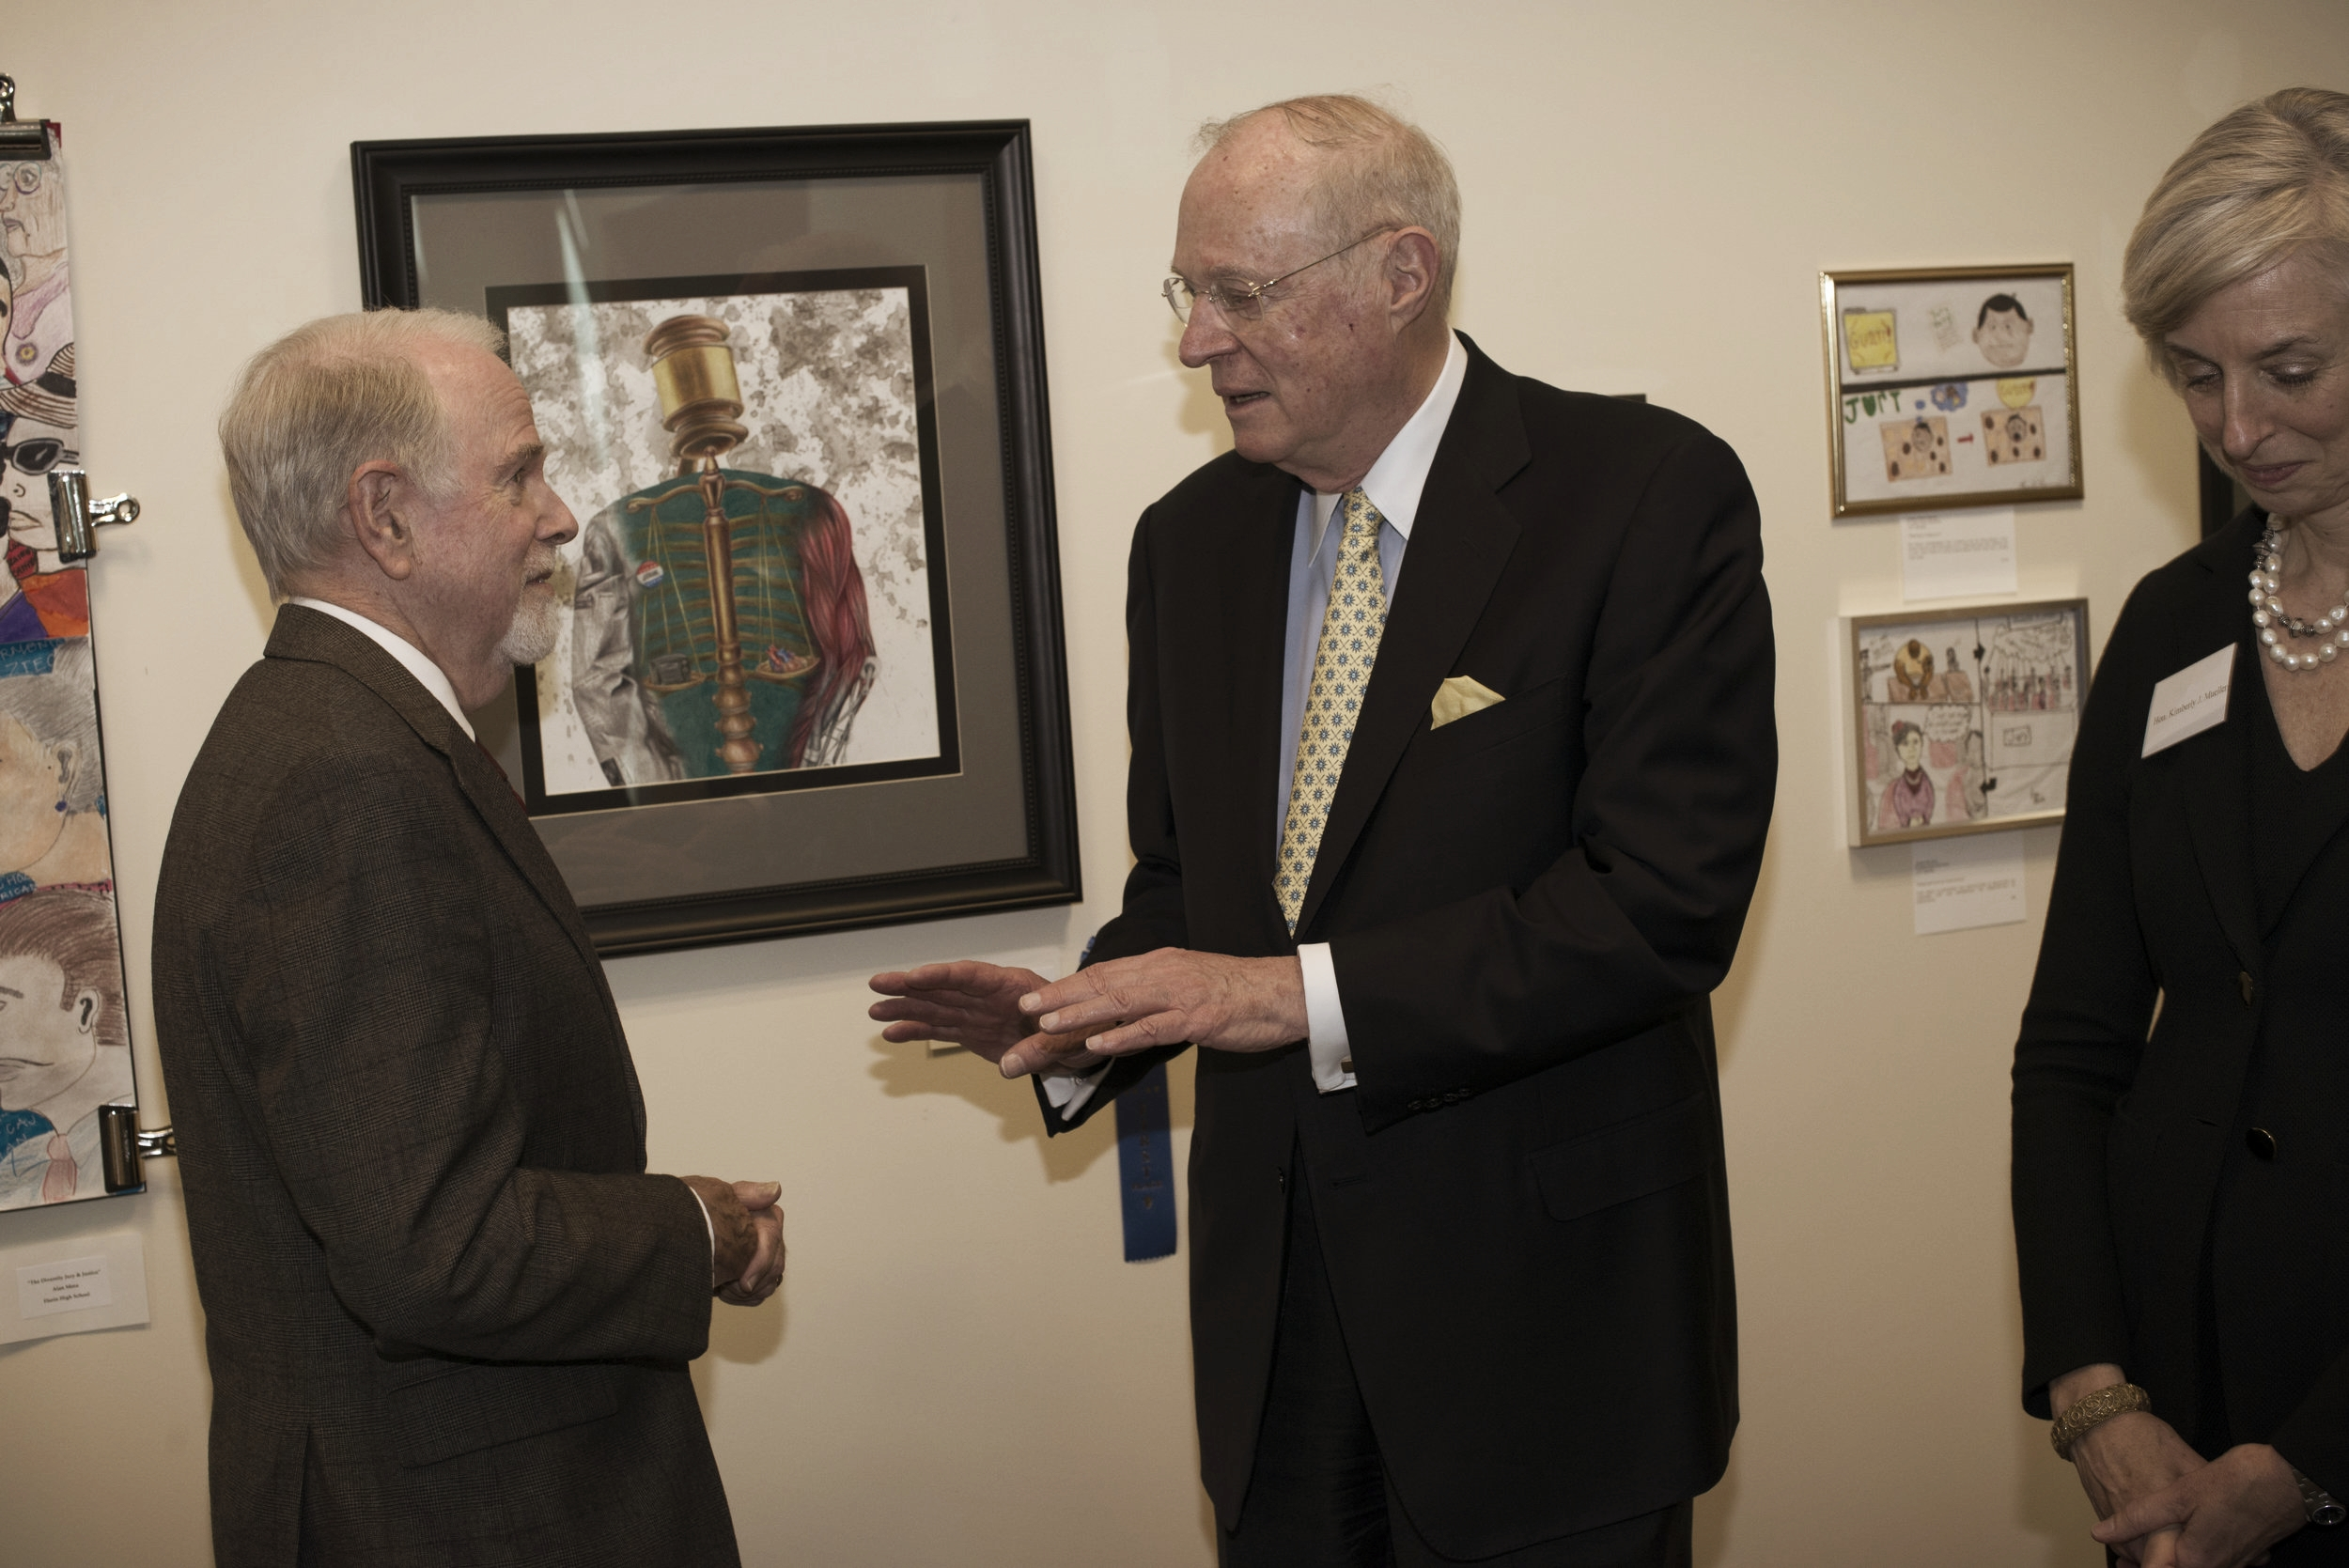 Justice Anthony M. Kennedy, the Hon. William B. Shubb and the Hon. Kimberly J. Mueller visiting the Learning Center.